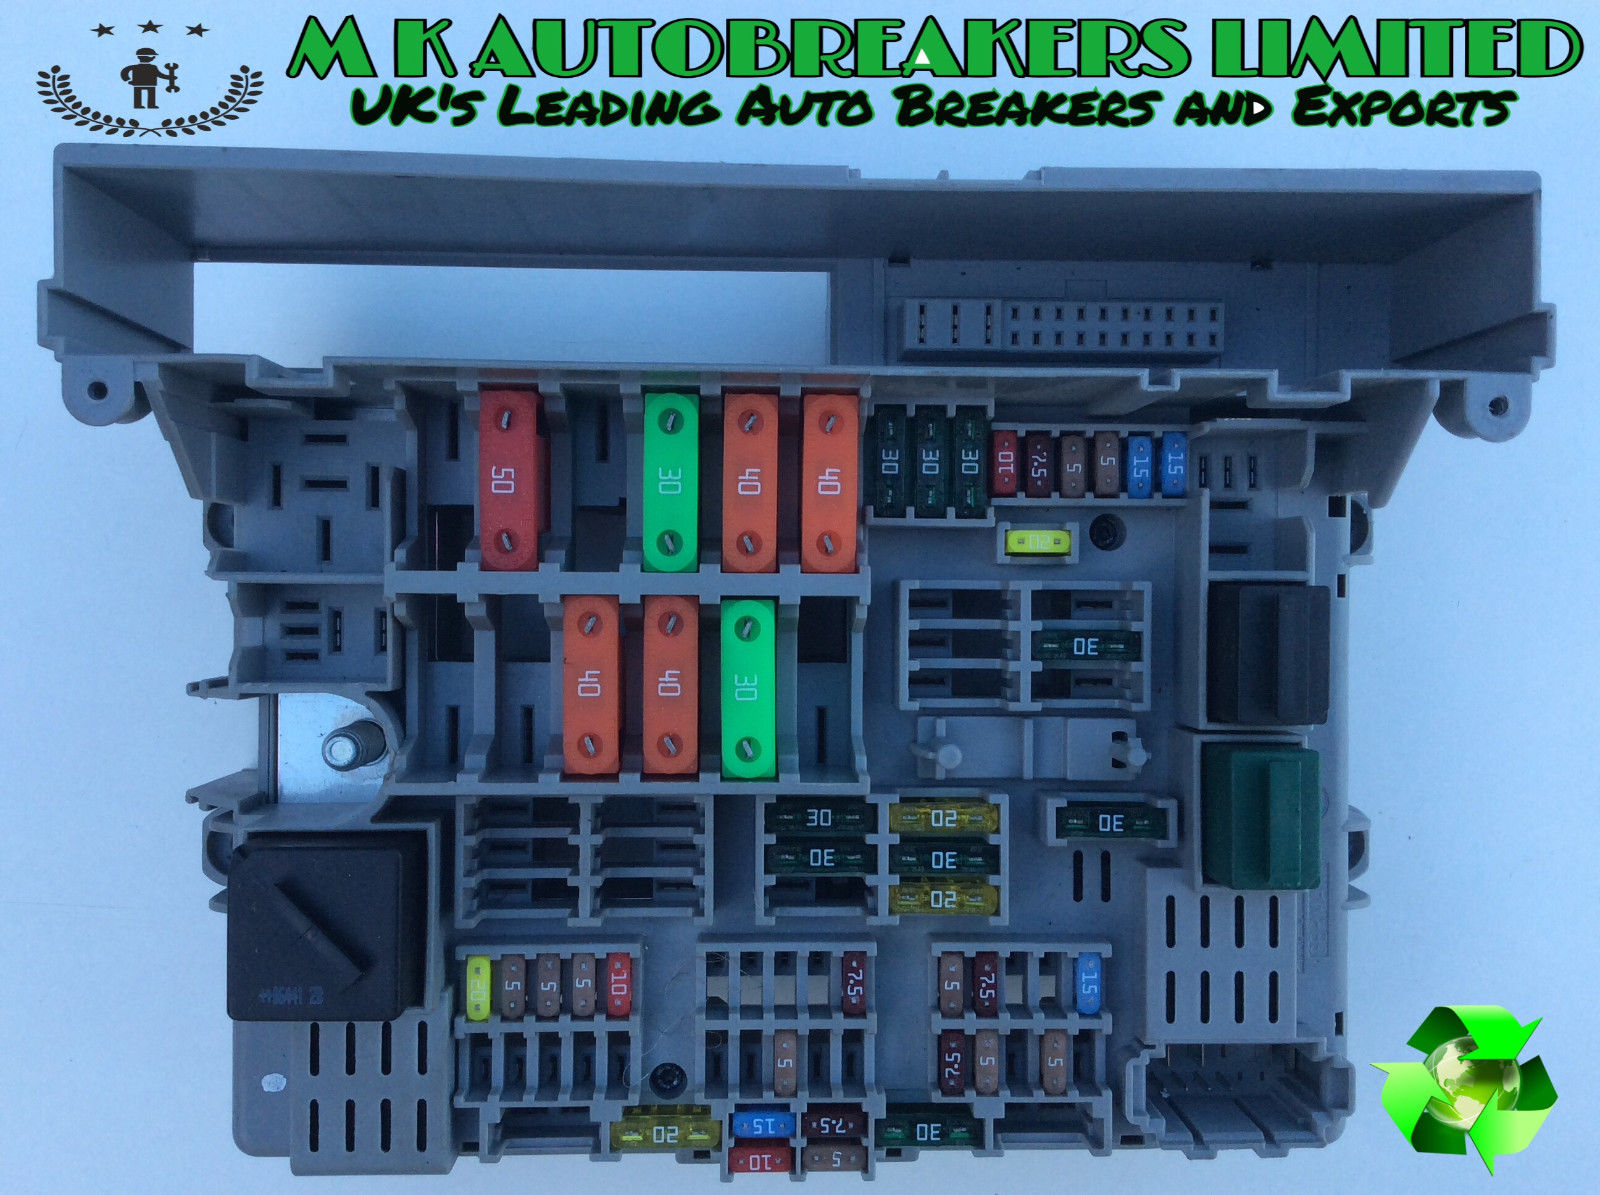 Bmw 328i Fuse Box Detailed Schematics Diagram Location Of Front In 2007 2013 X5 Youtube E92 Explained Wiring Diagrams Torsion Bar